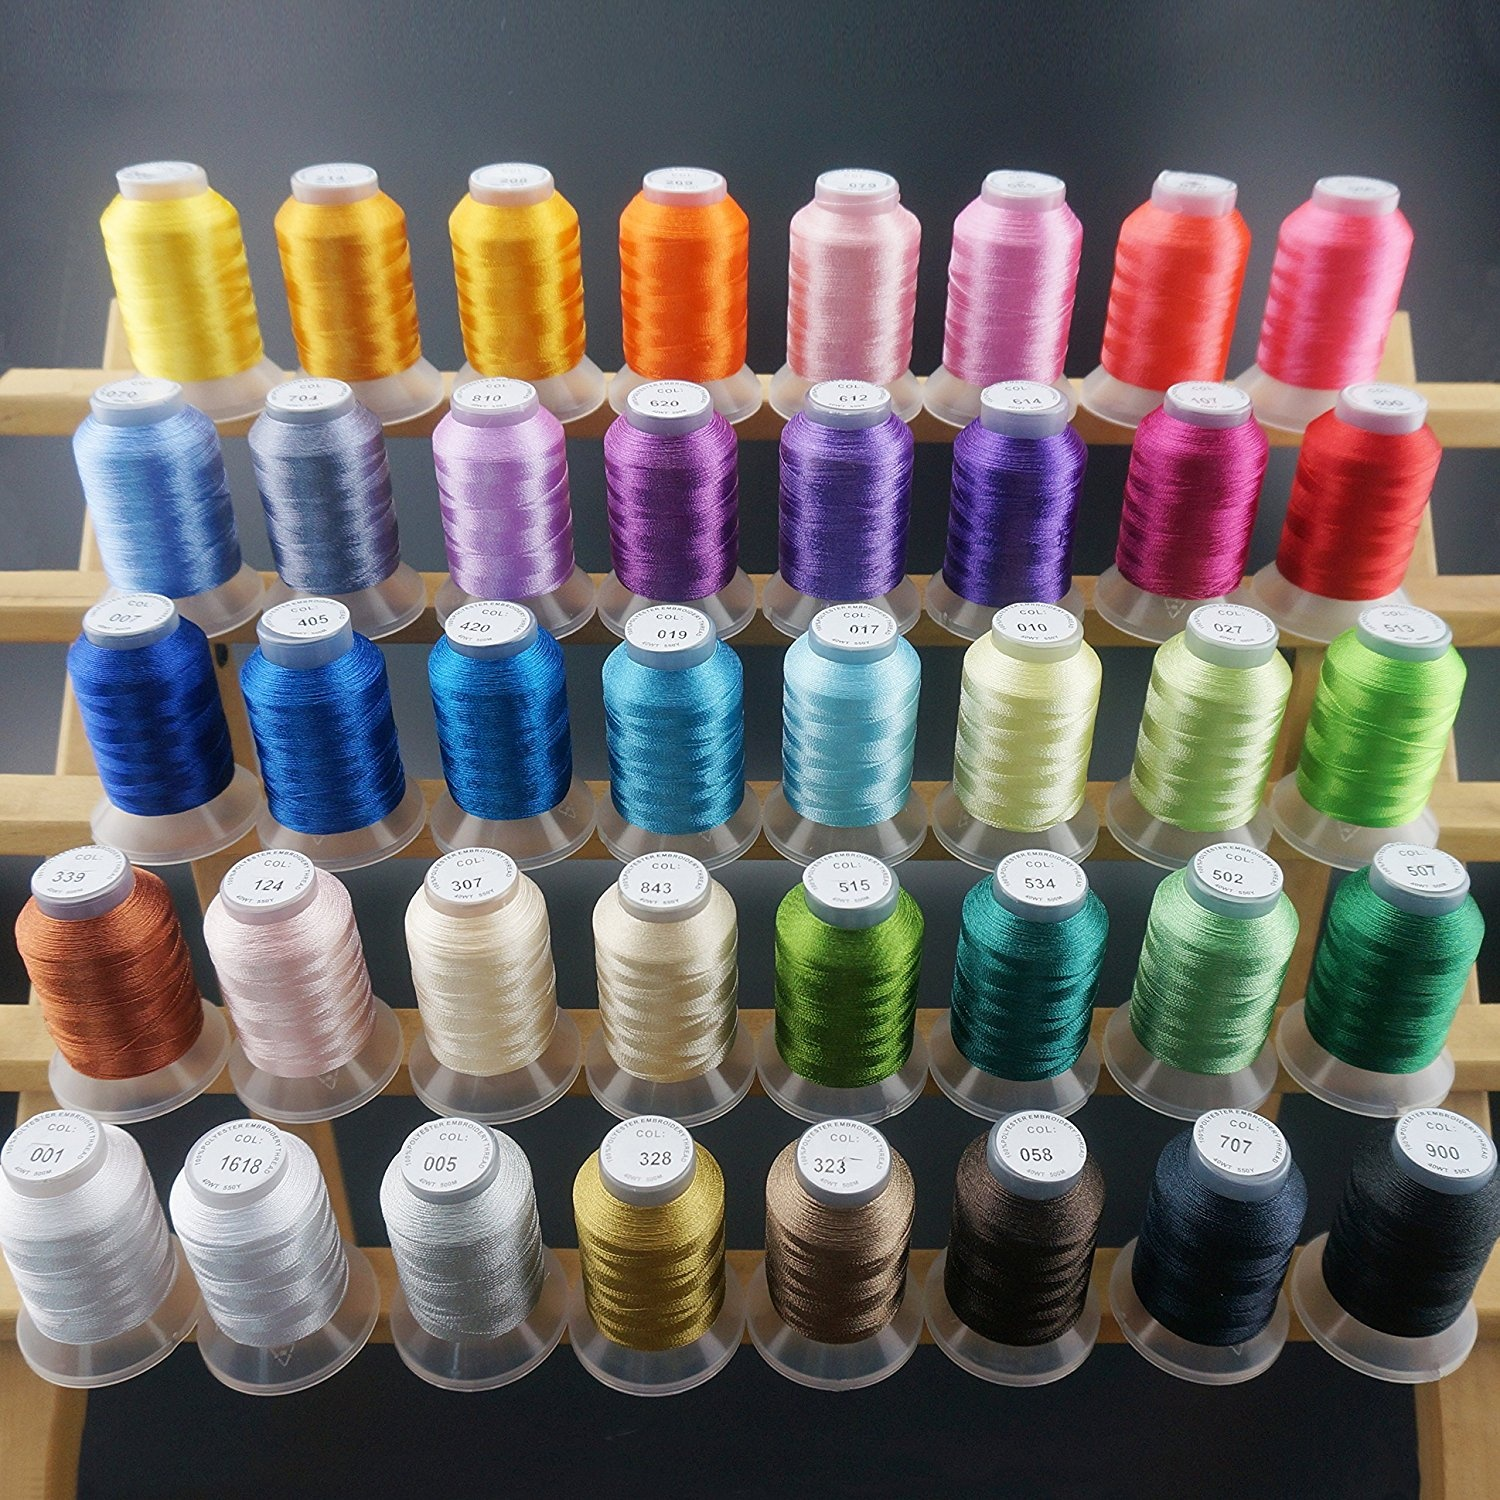 New brothread 40 Brother Colours Polyester Machine Embroidery Thread Kit  500M (550Y) each Spool for Brother Babylock Janome Singer Pfaff Husqvarna